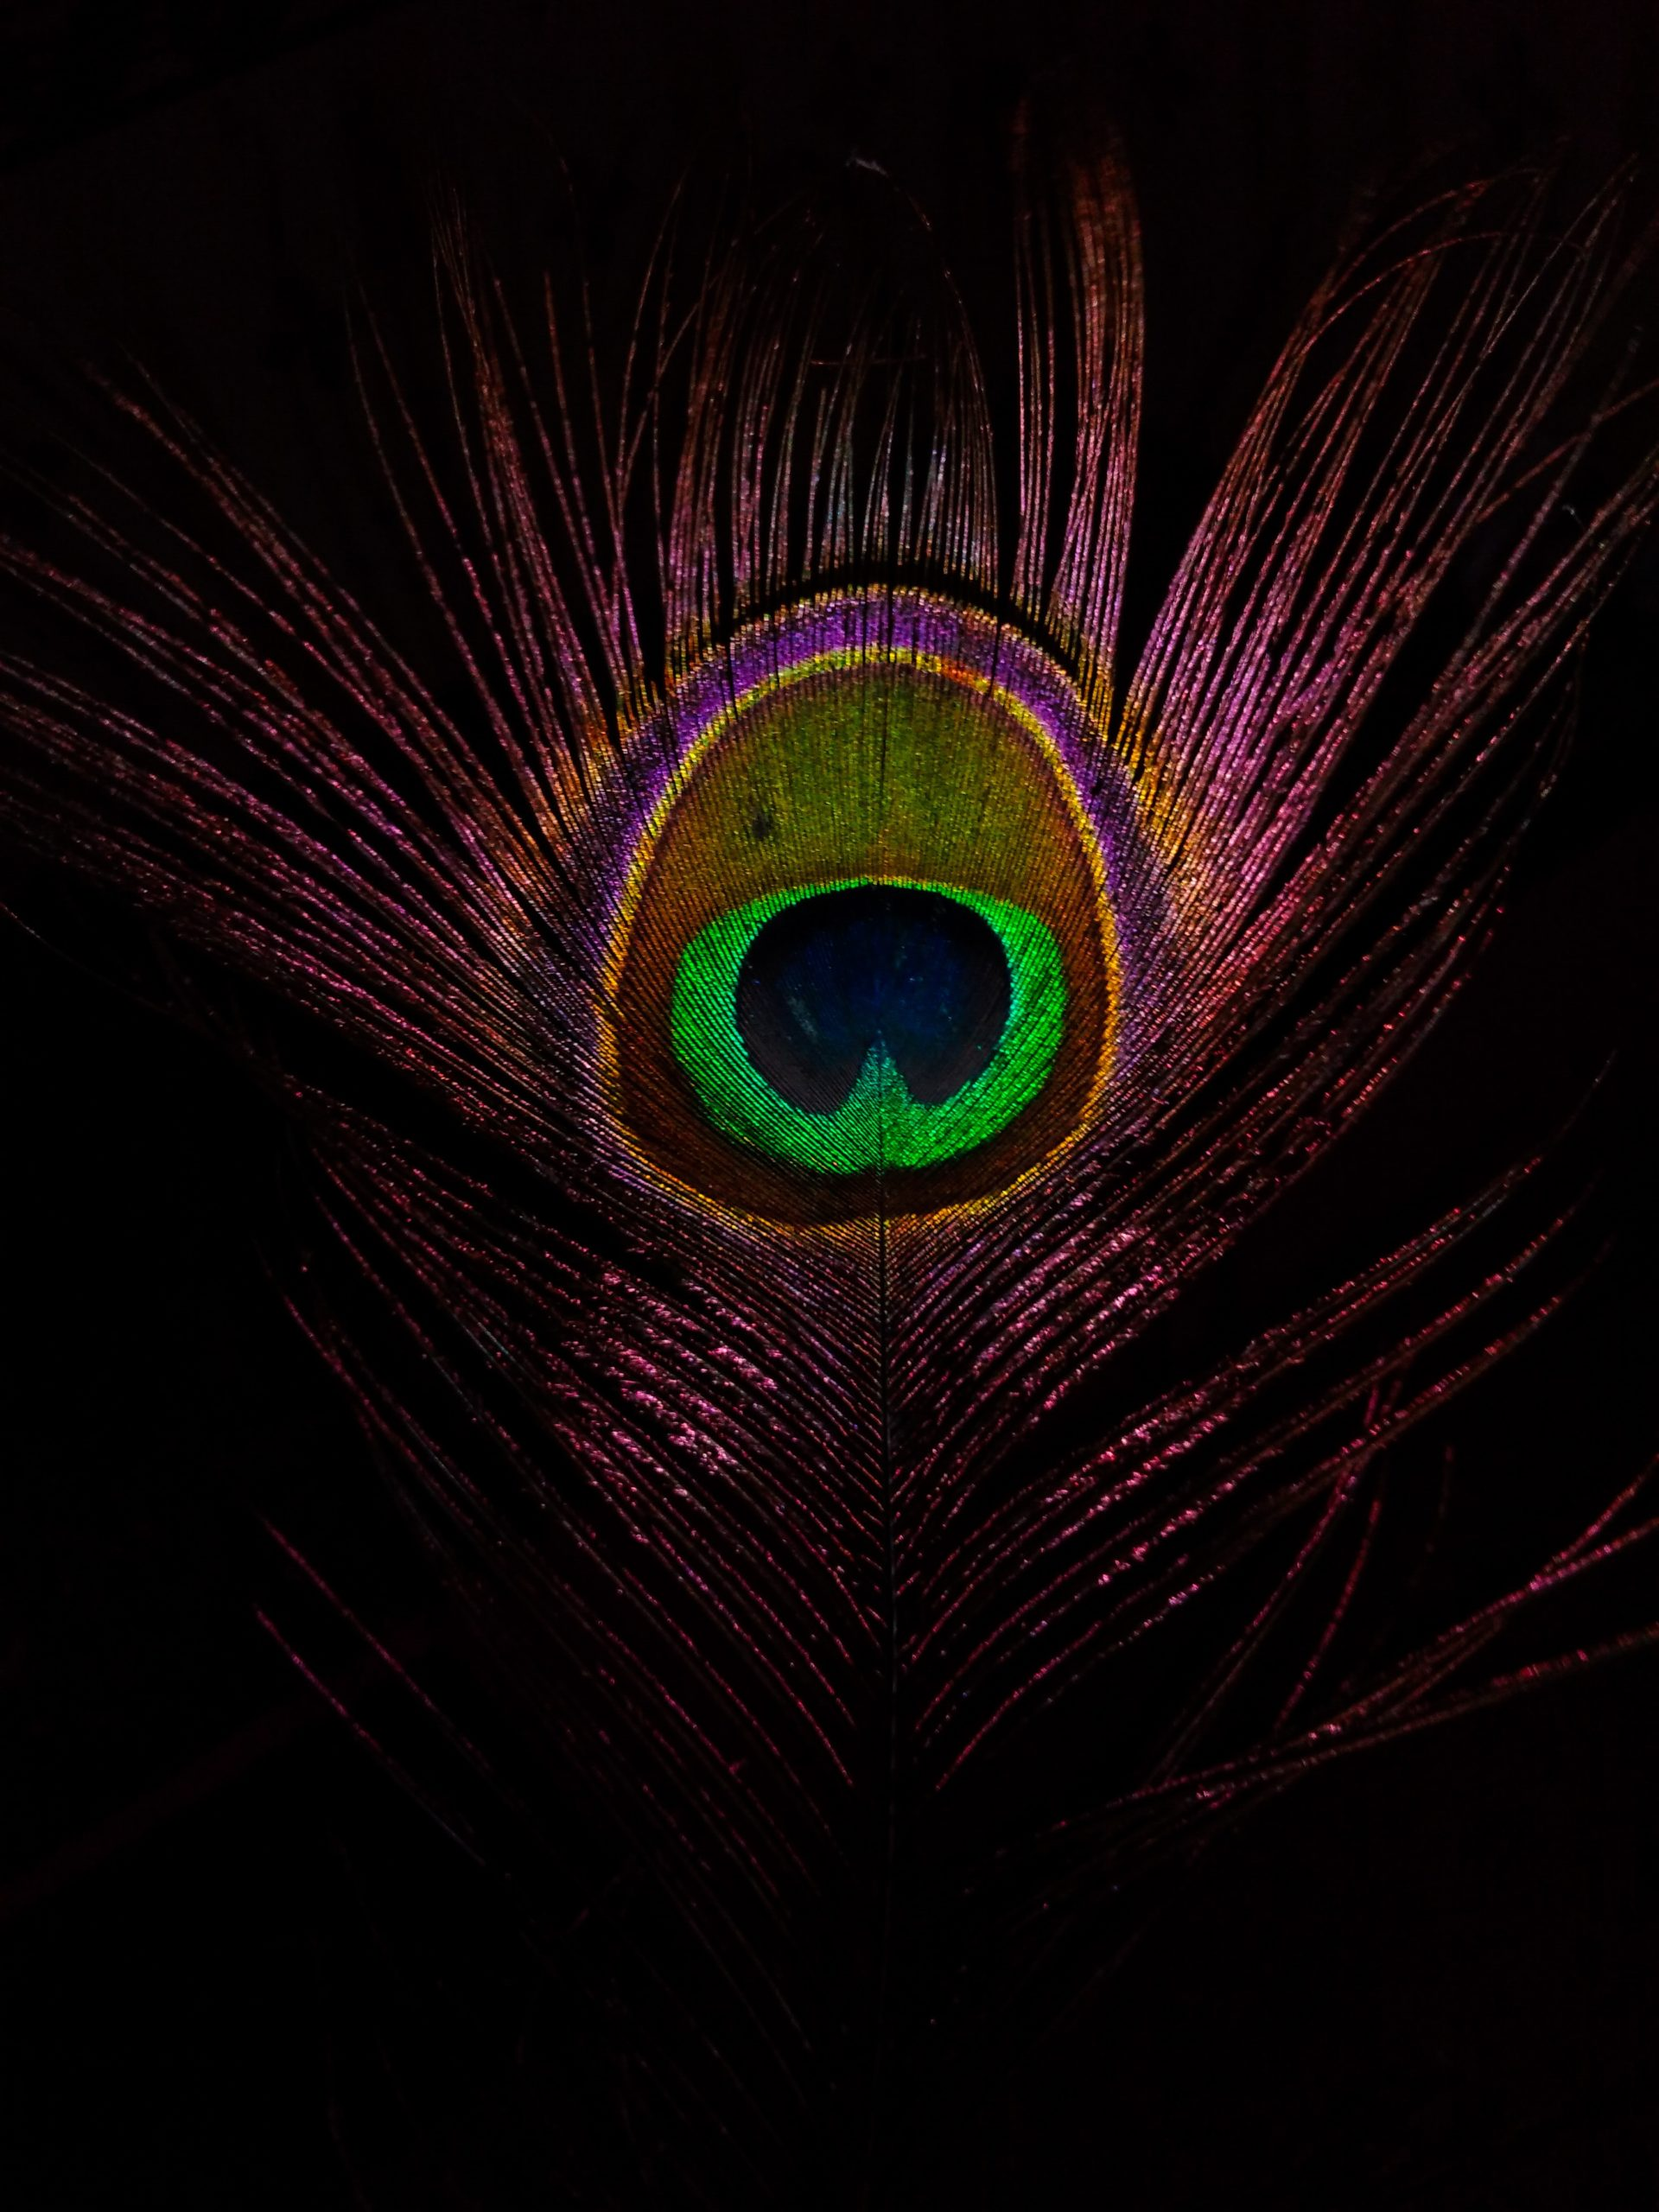 ayush-tiwari-purple peacock feather